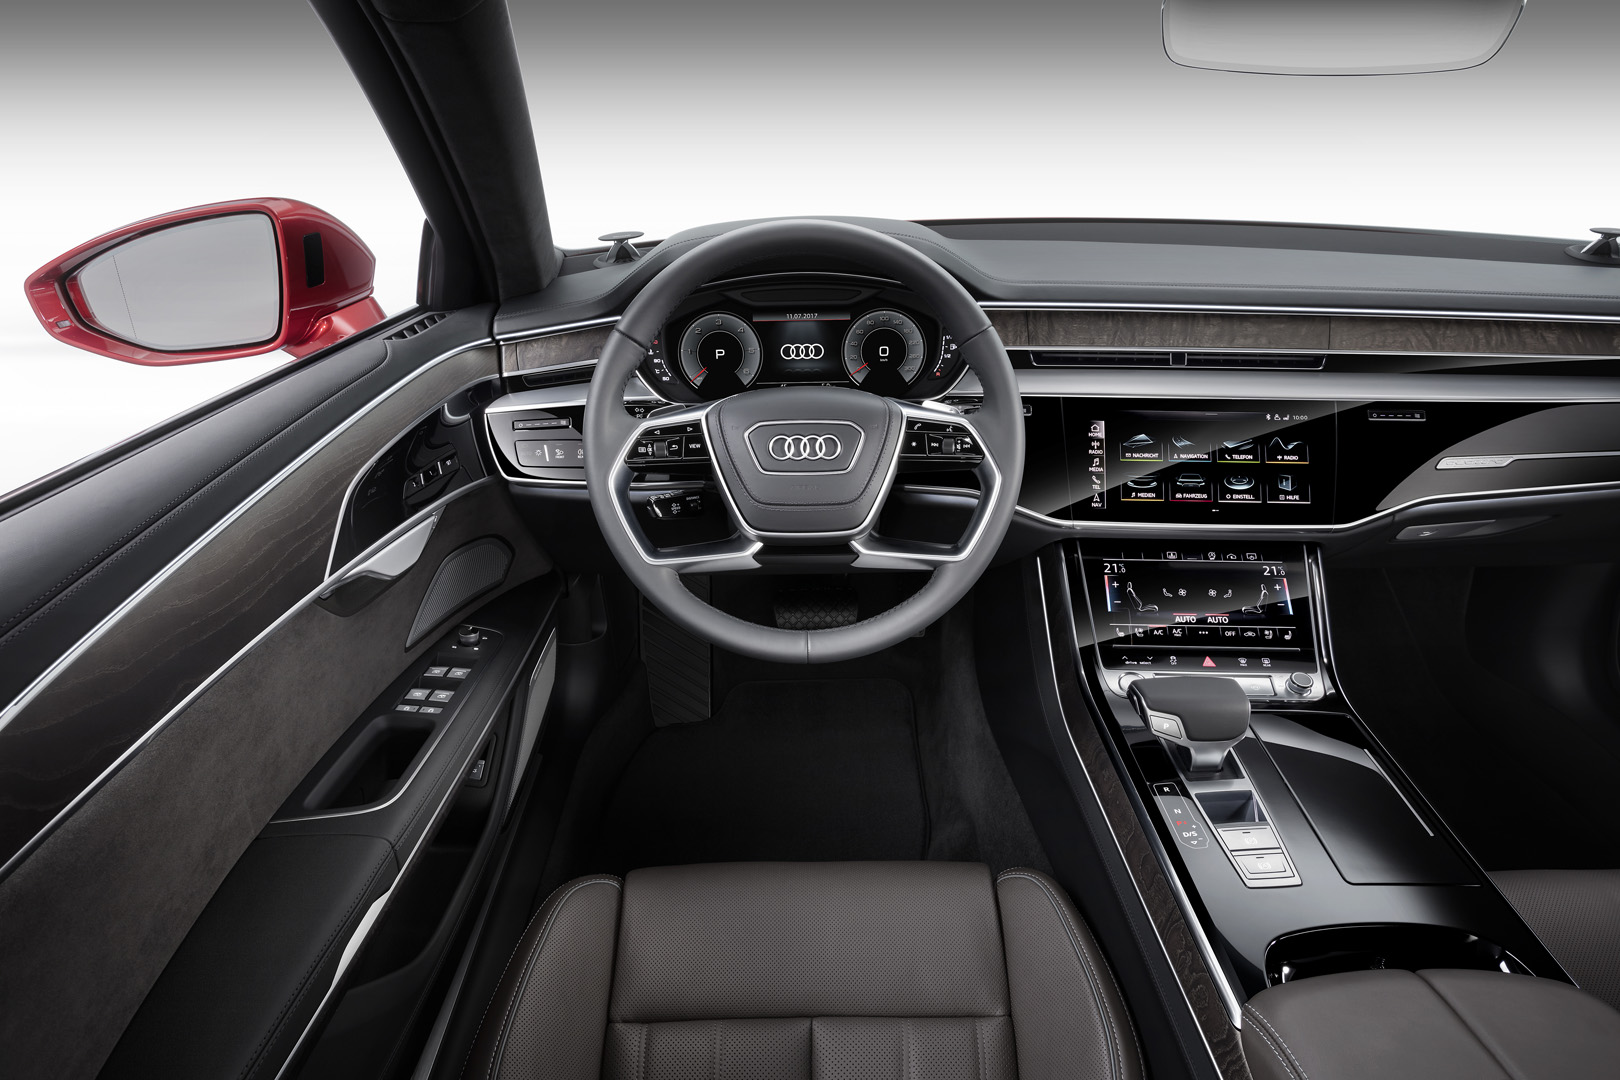 How Does The New 2018 Audi A8 Stack Up With 7 Series